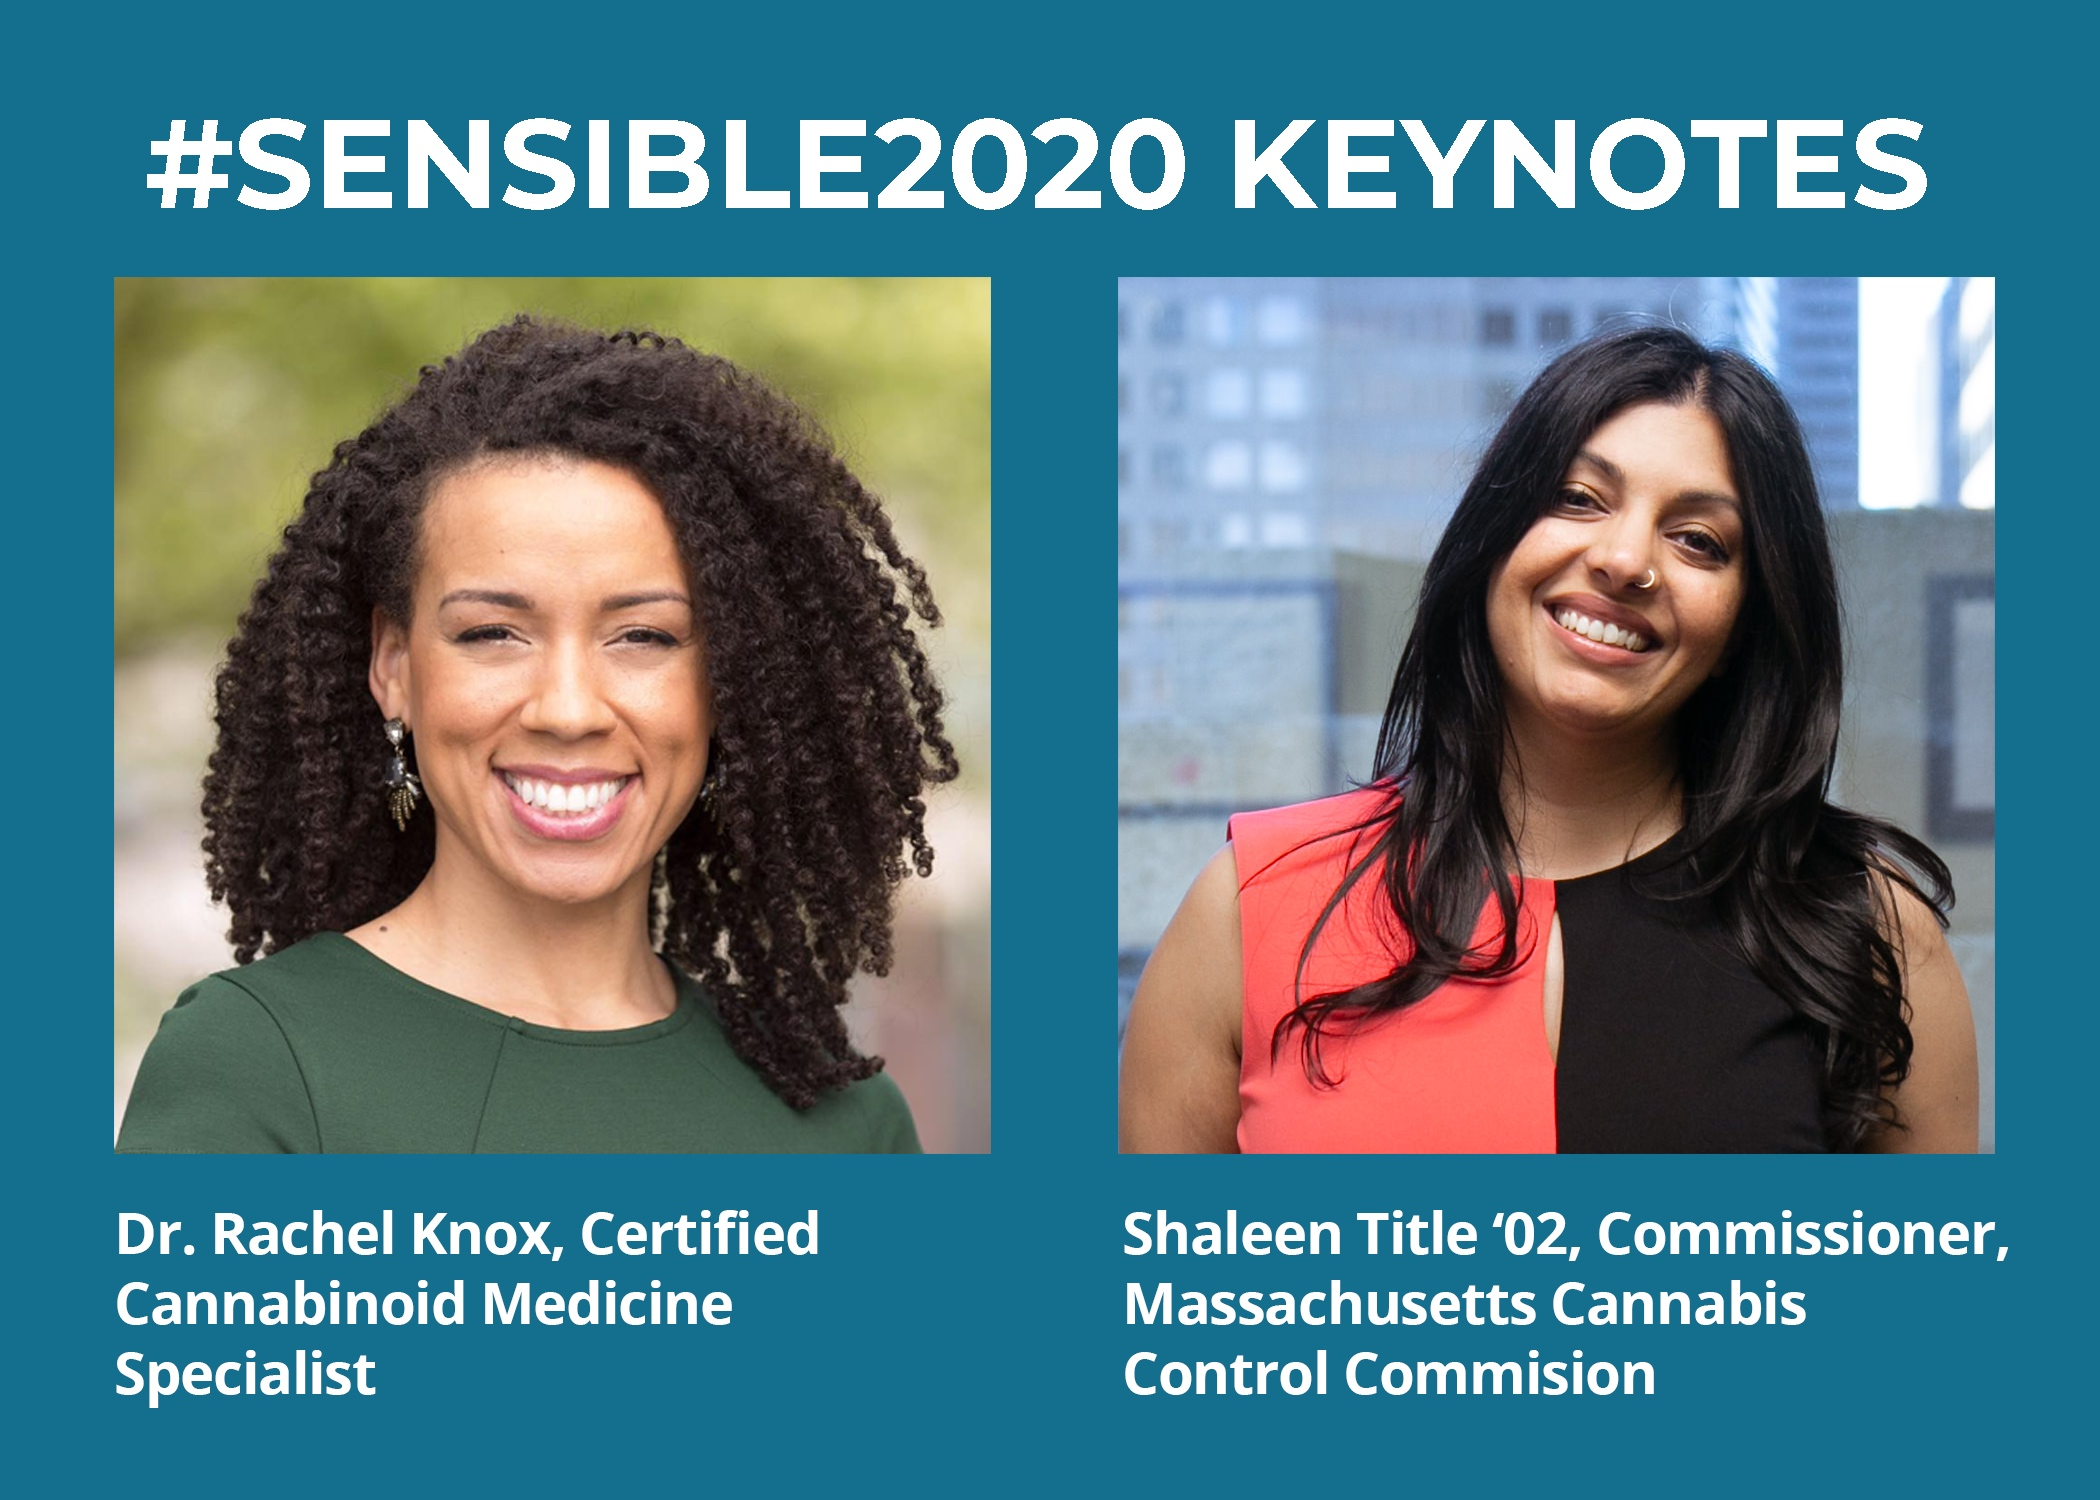 #Sensible2020 keynotes, blue background with 2 headshots Dr. Rachel Knox and Shaleen Title '02